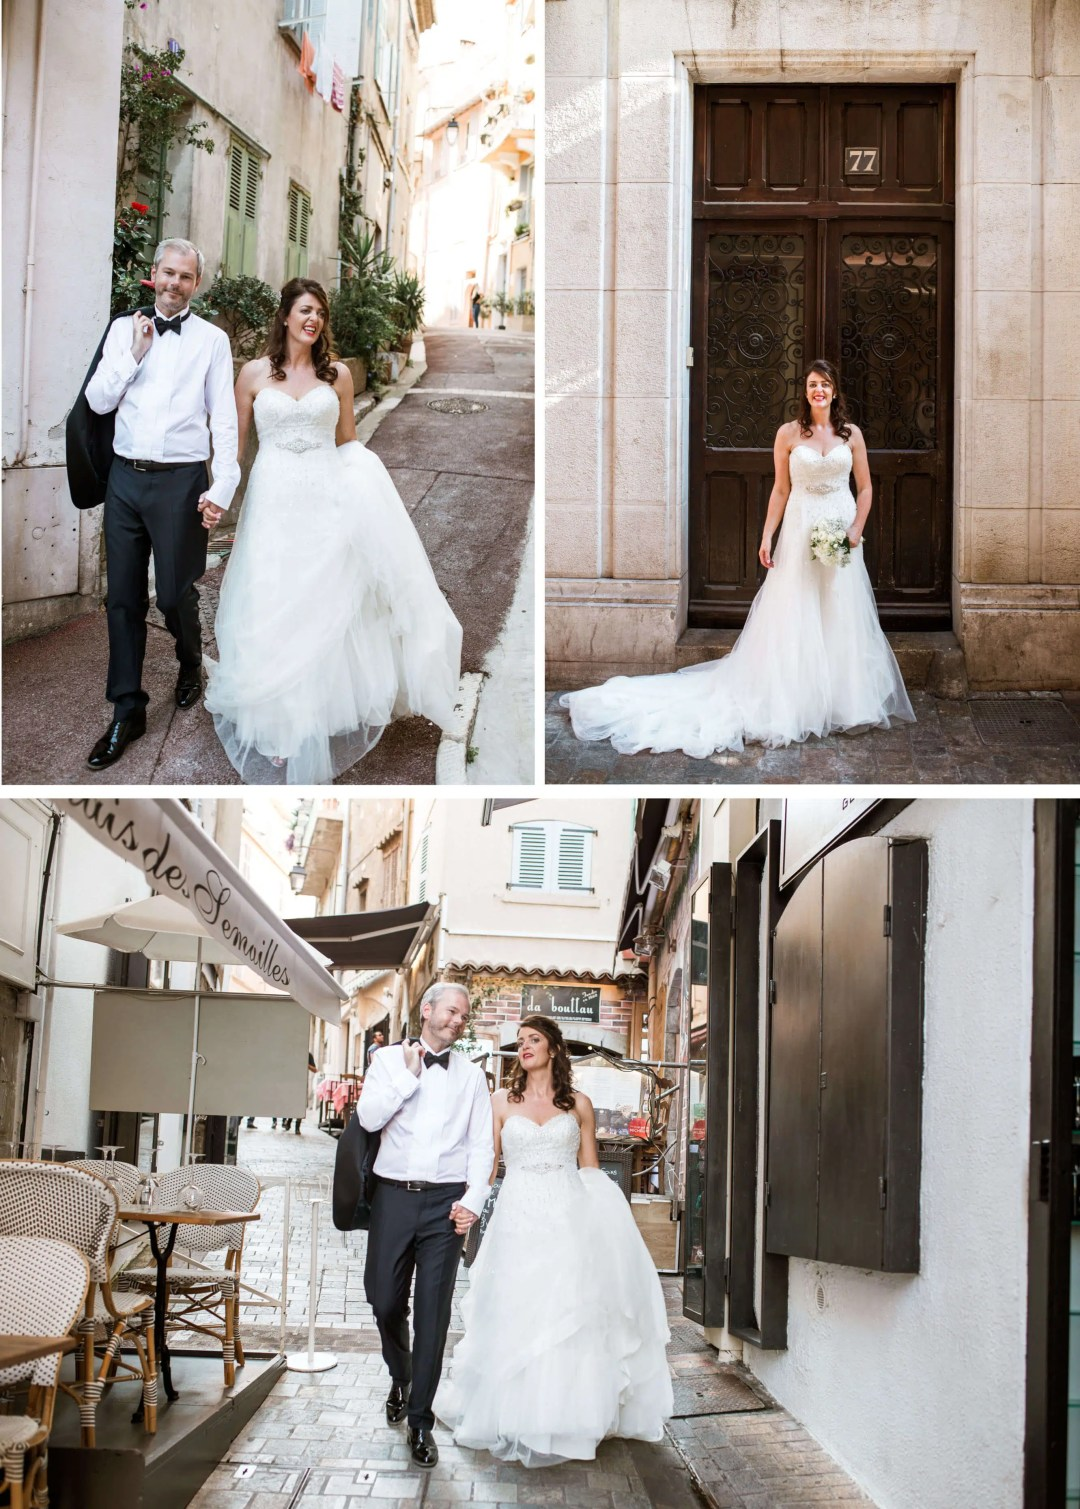 streets-of-cannes-wedding-portraits-brighton-destination-wedding-photographer